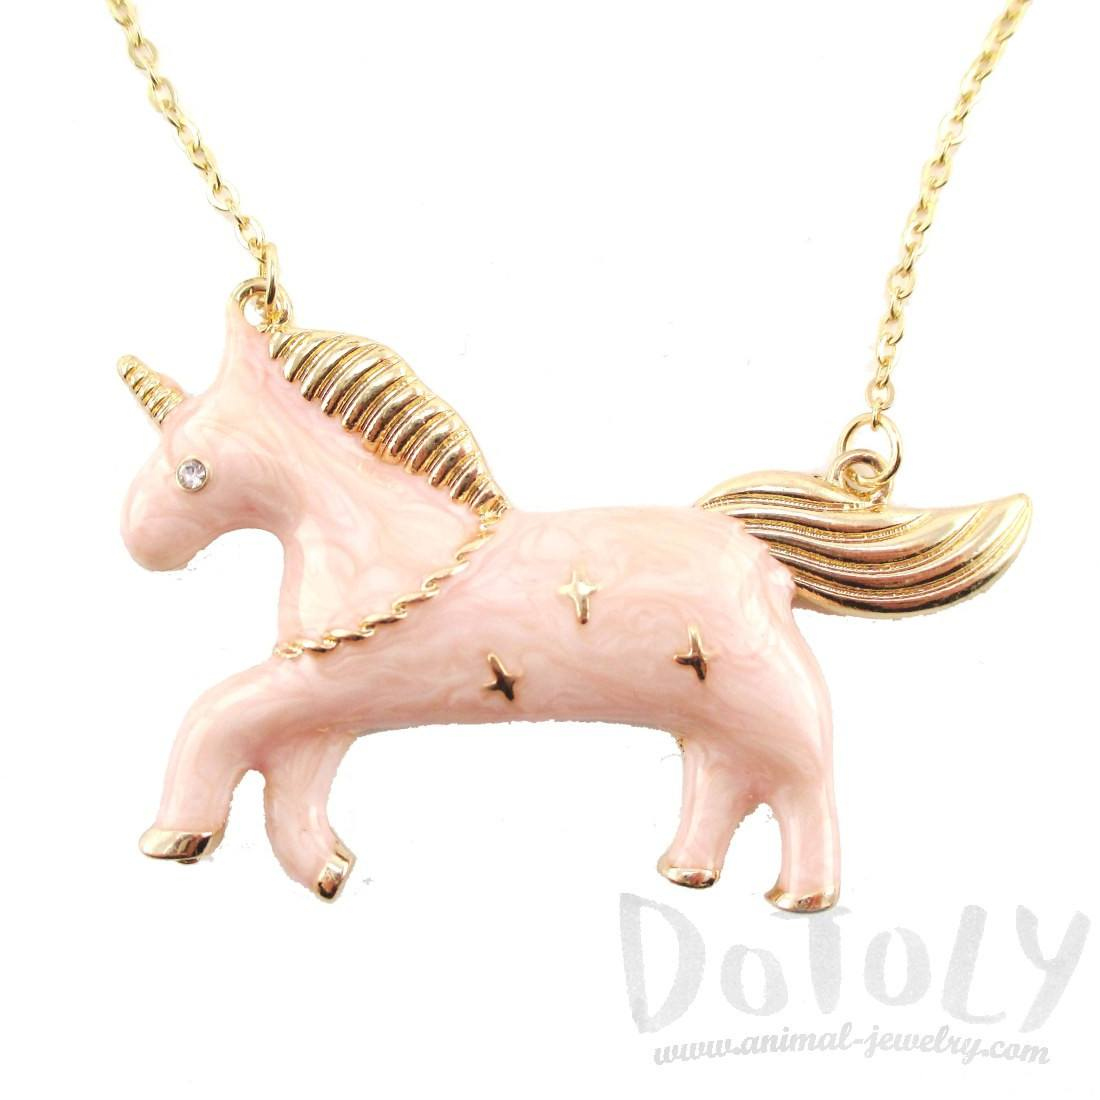 Adorable Unicorn Enamel Pendant Necklace in Pink